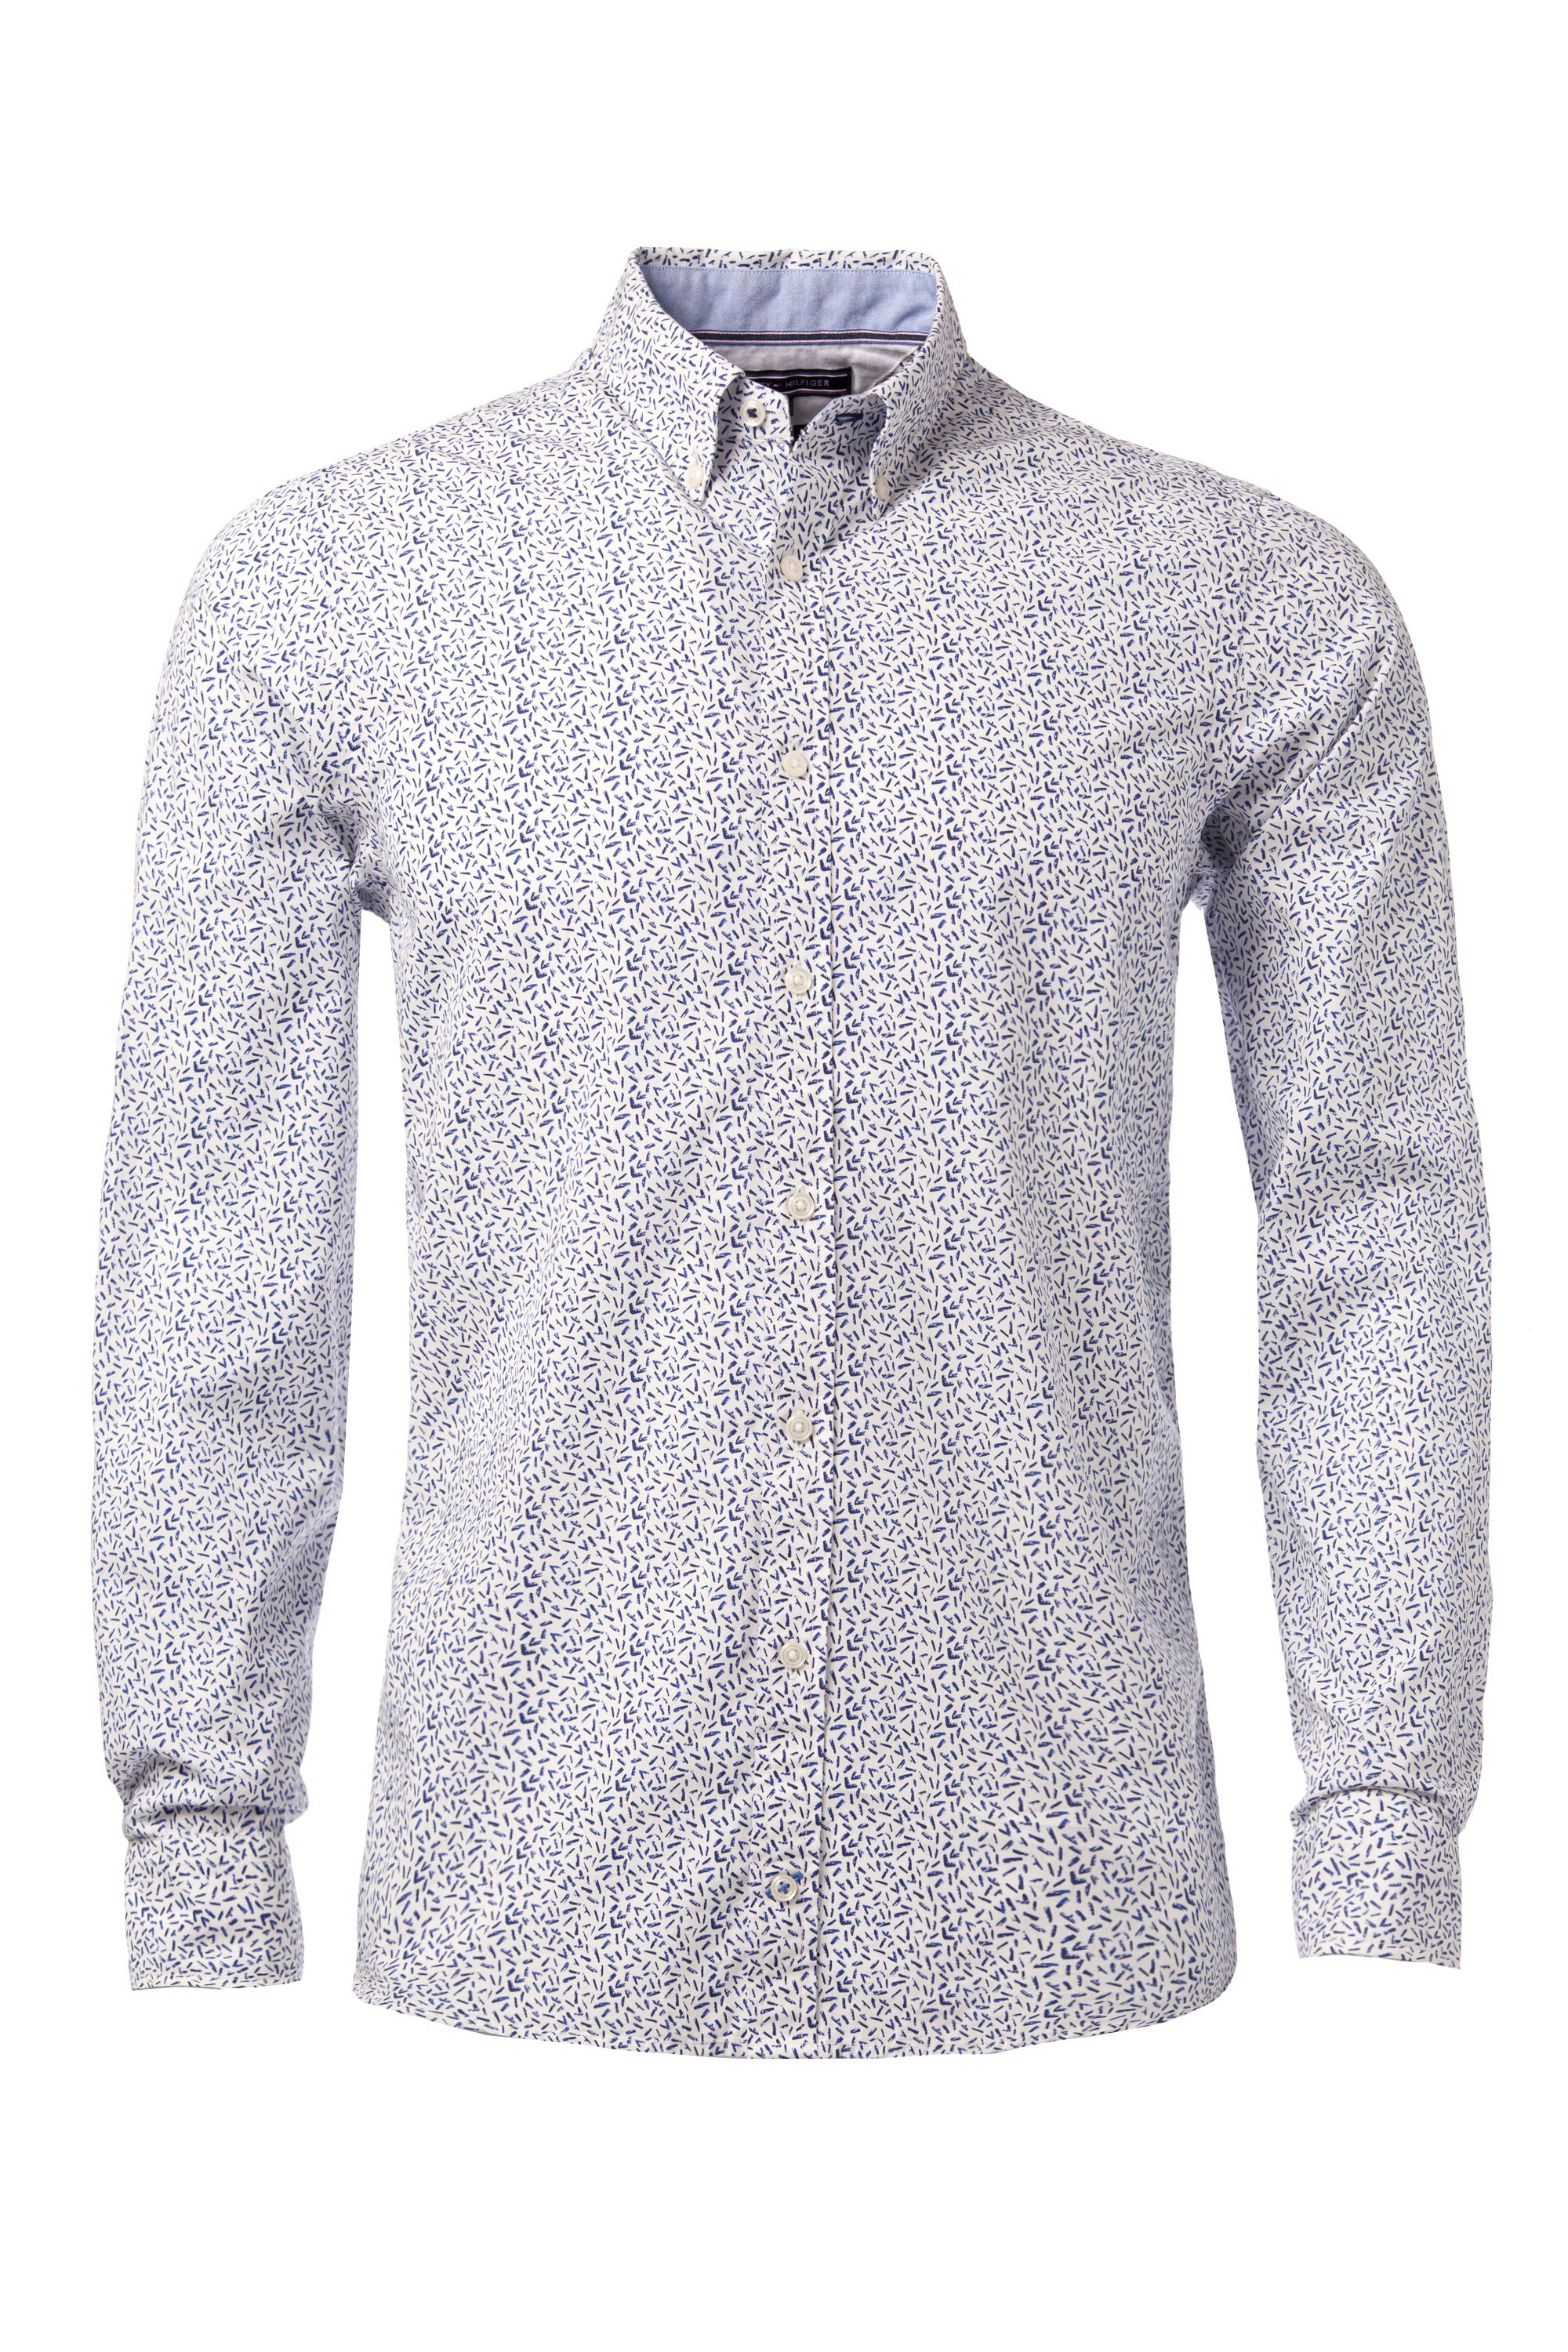 Tommy hilfiger lake pattern long sleeve shirt in white for for Long sleeve shirt pattern